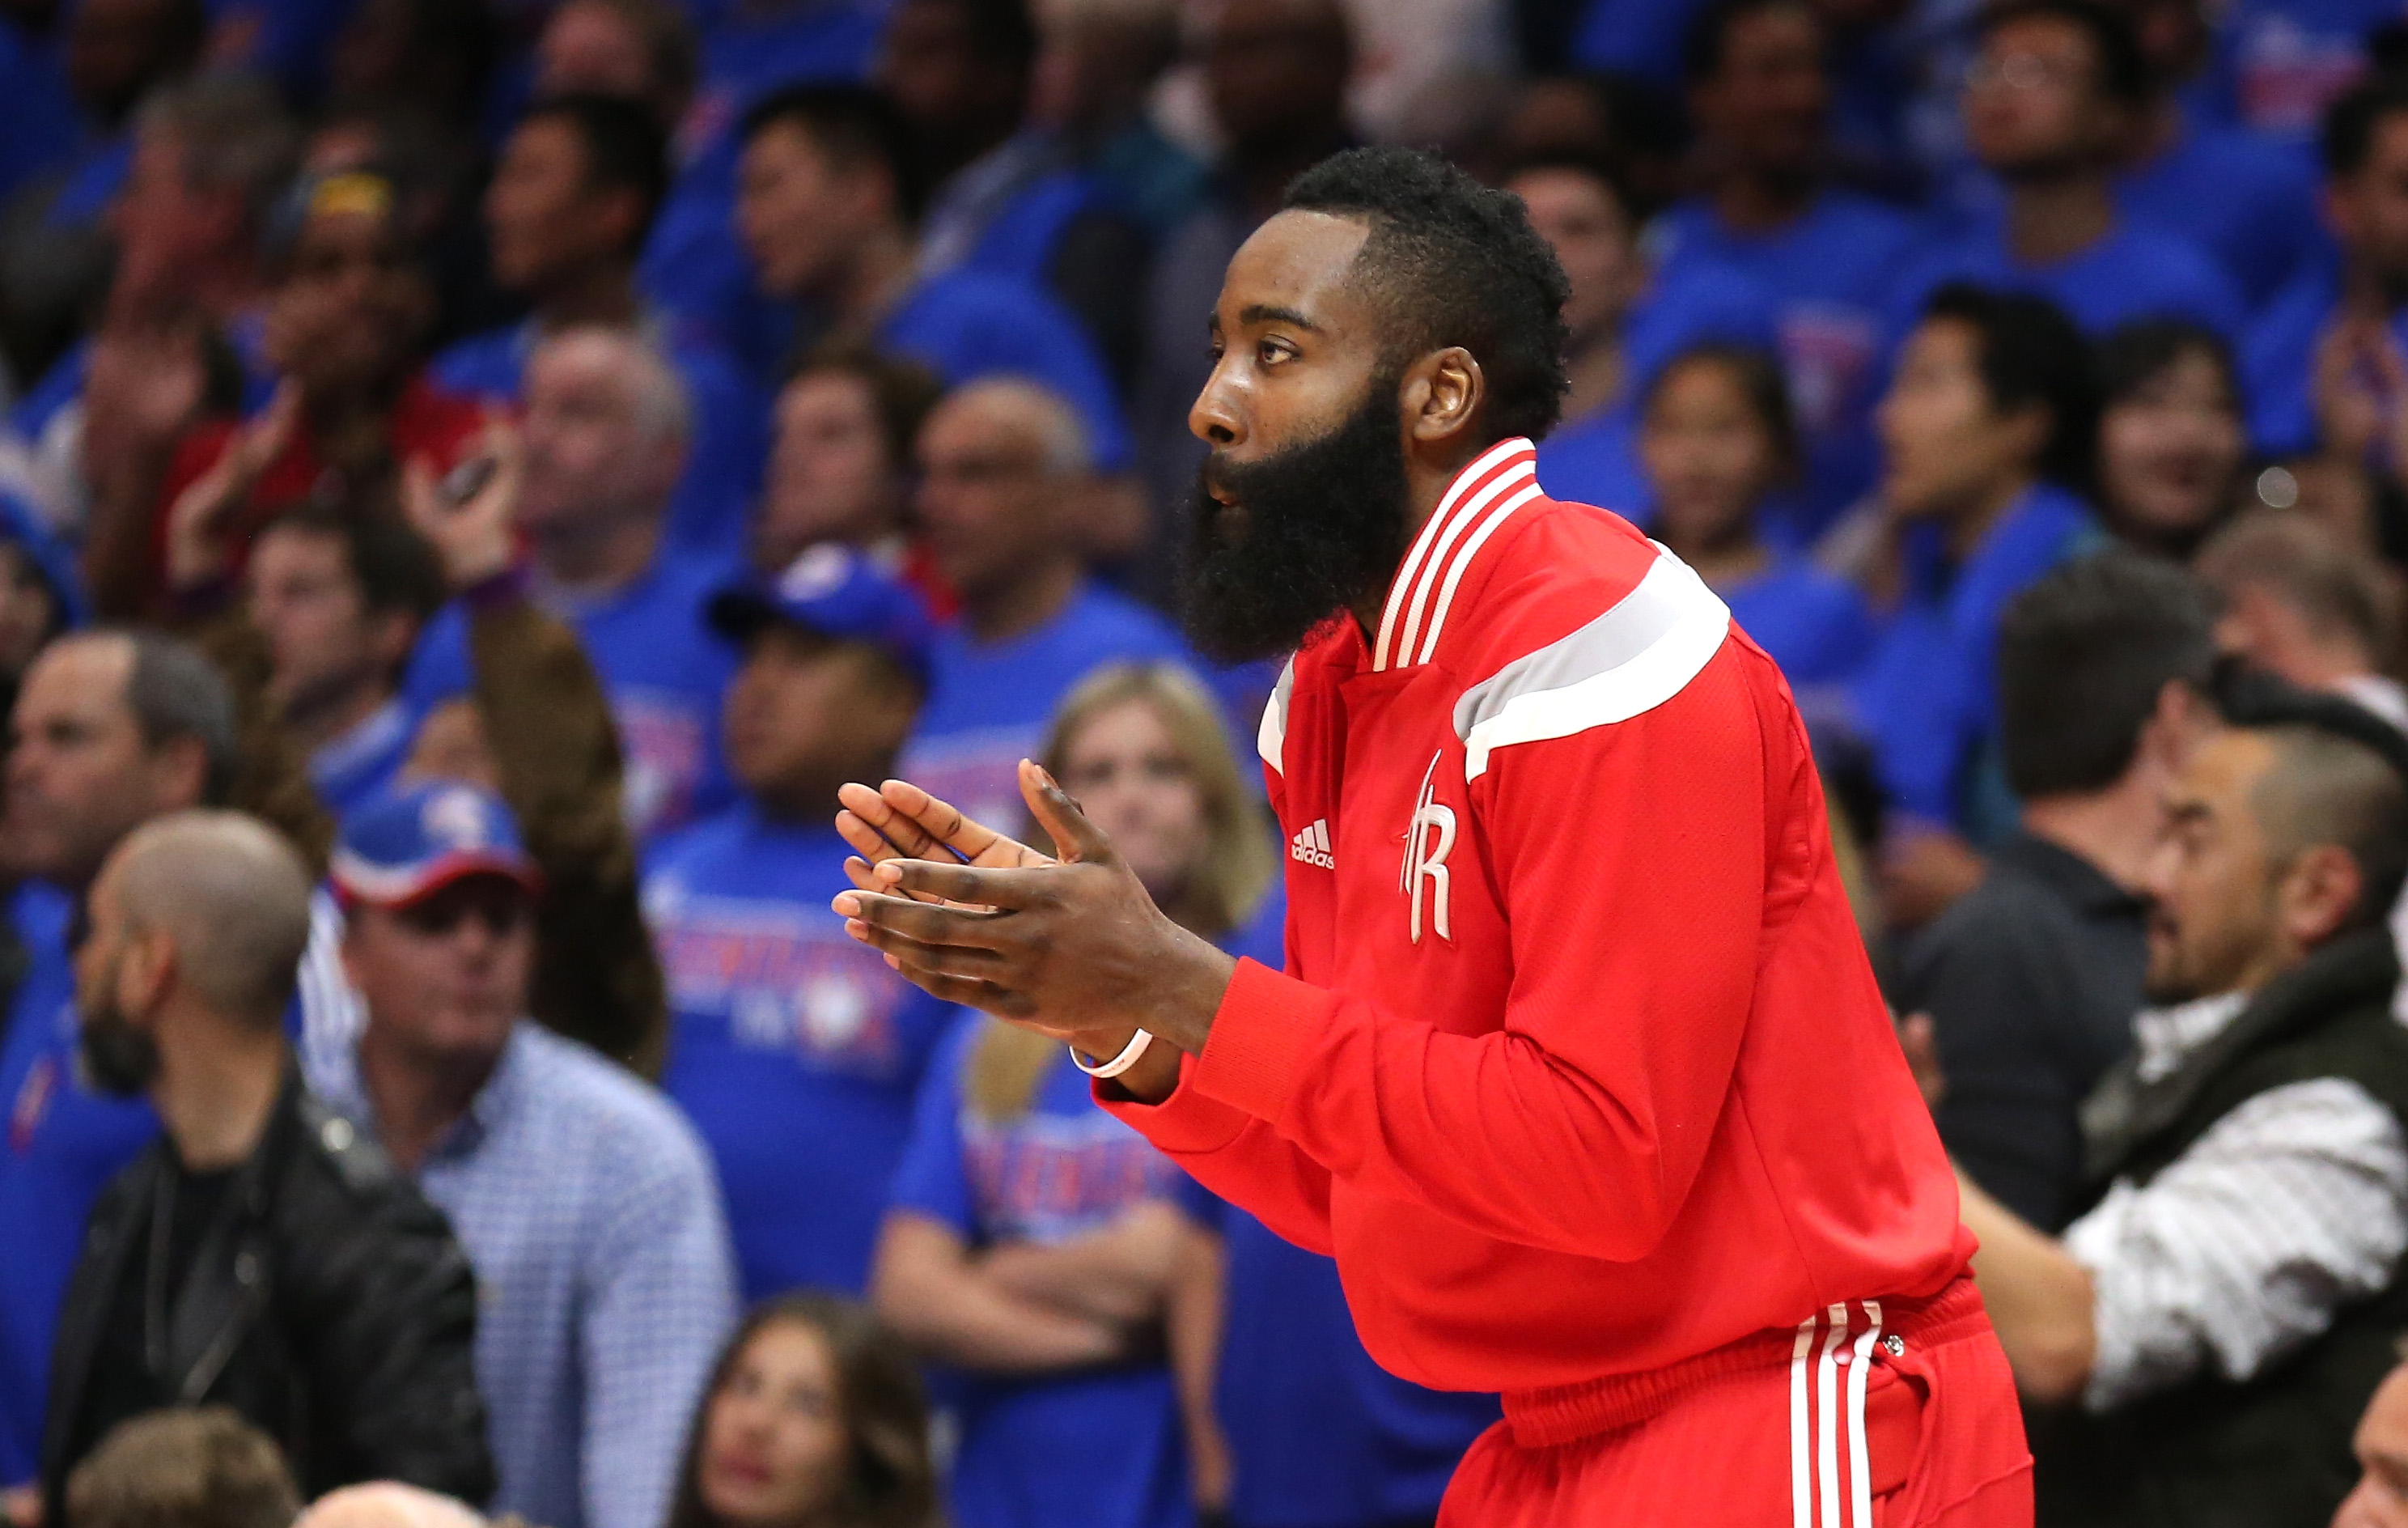 LOS ANGELES, CA - MAY 14:  James Harden #13 of the Houston Rockets cheers from the bench in the fourth quarter against the Los Angeles Clippers during Game Six of the Western Conference semifinals of the 2015 NBA Playoffs at Staples Center on May 14, 2015